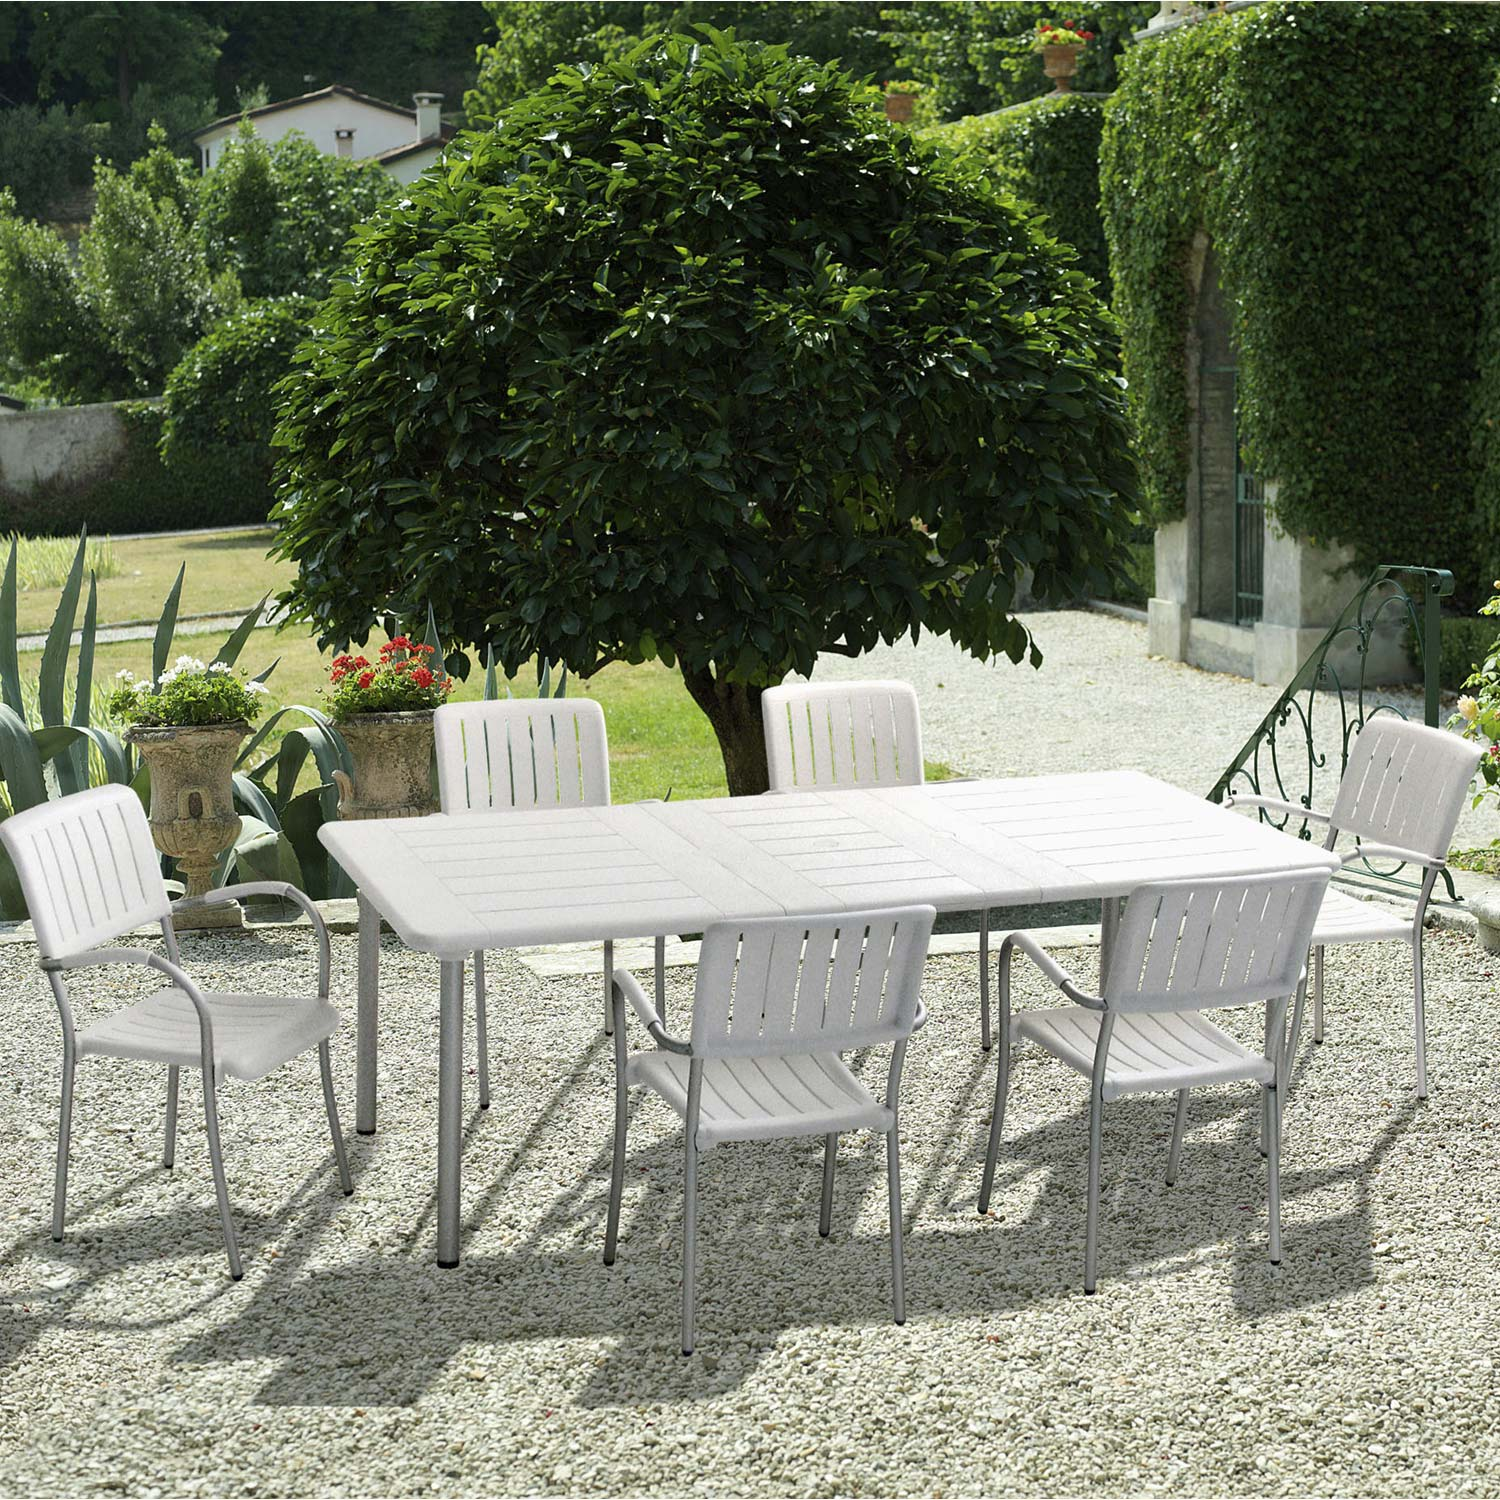 salon de jardin maestrale blanc 6 personnes leroy merlin. Black Bedroom Furniture Sets. Home Design Ideas